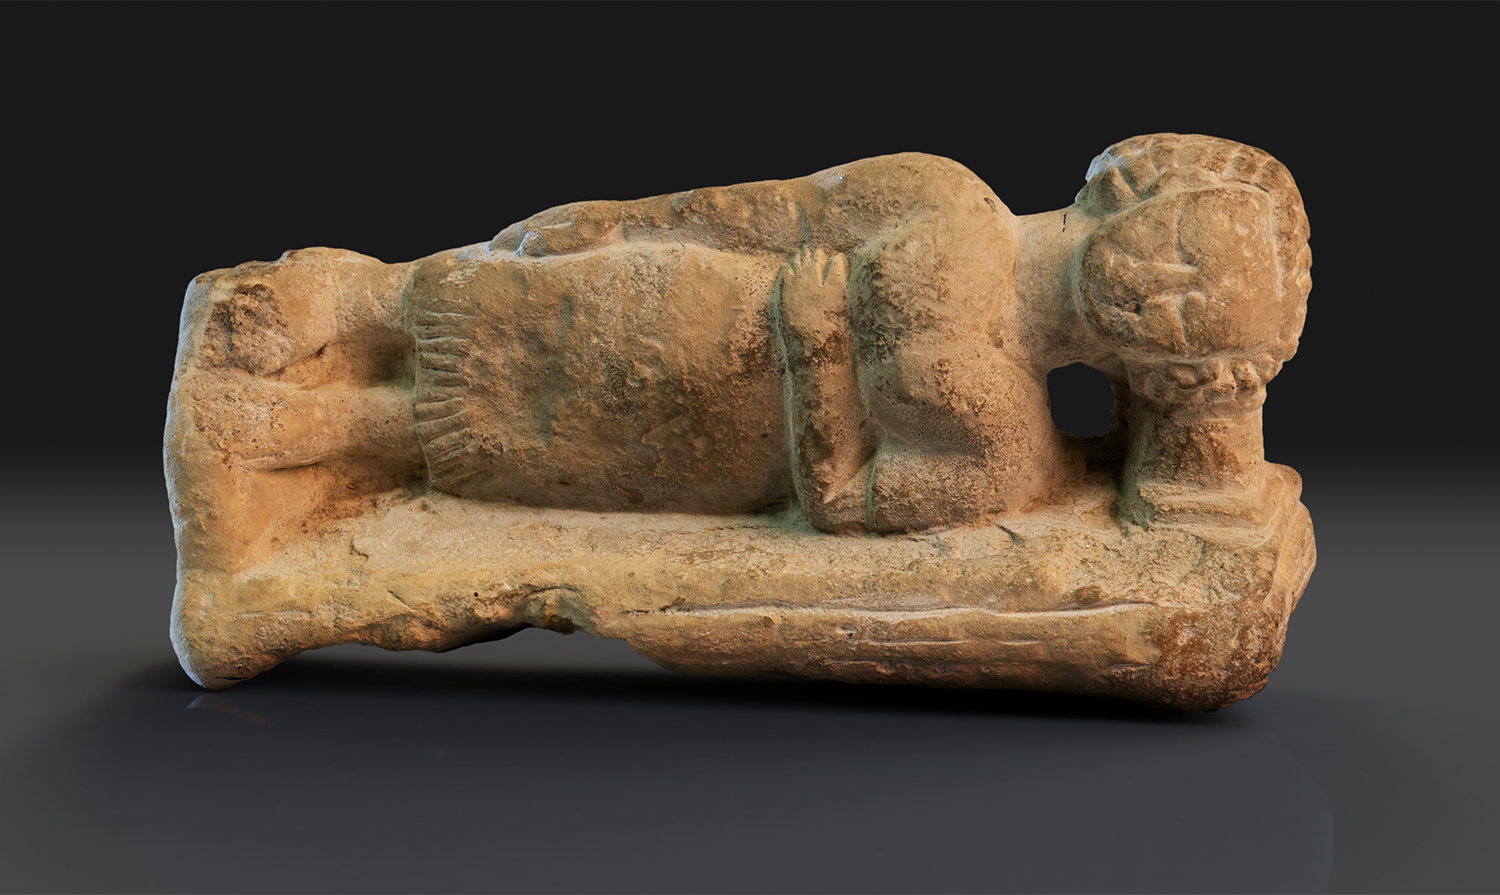 Limestone figure of a sleeping woman using a headrest in the collection of Glencairn Museum (E1219).